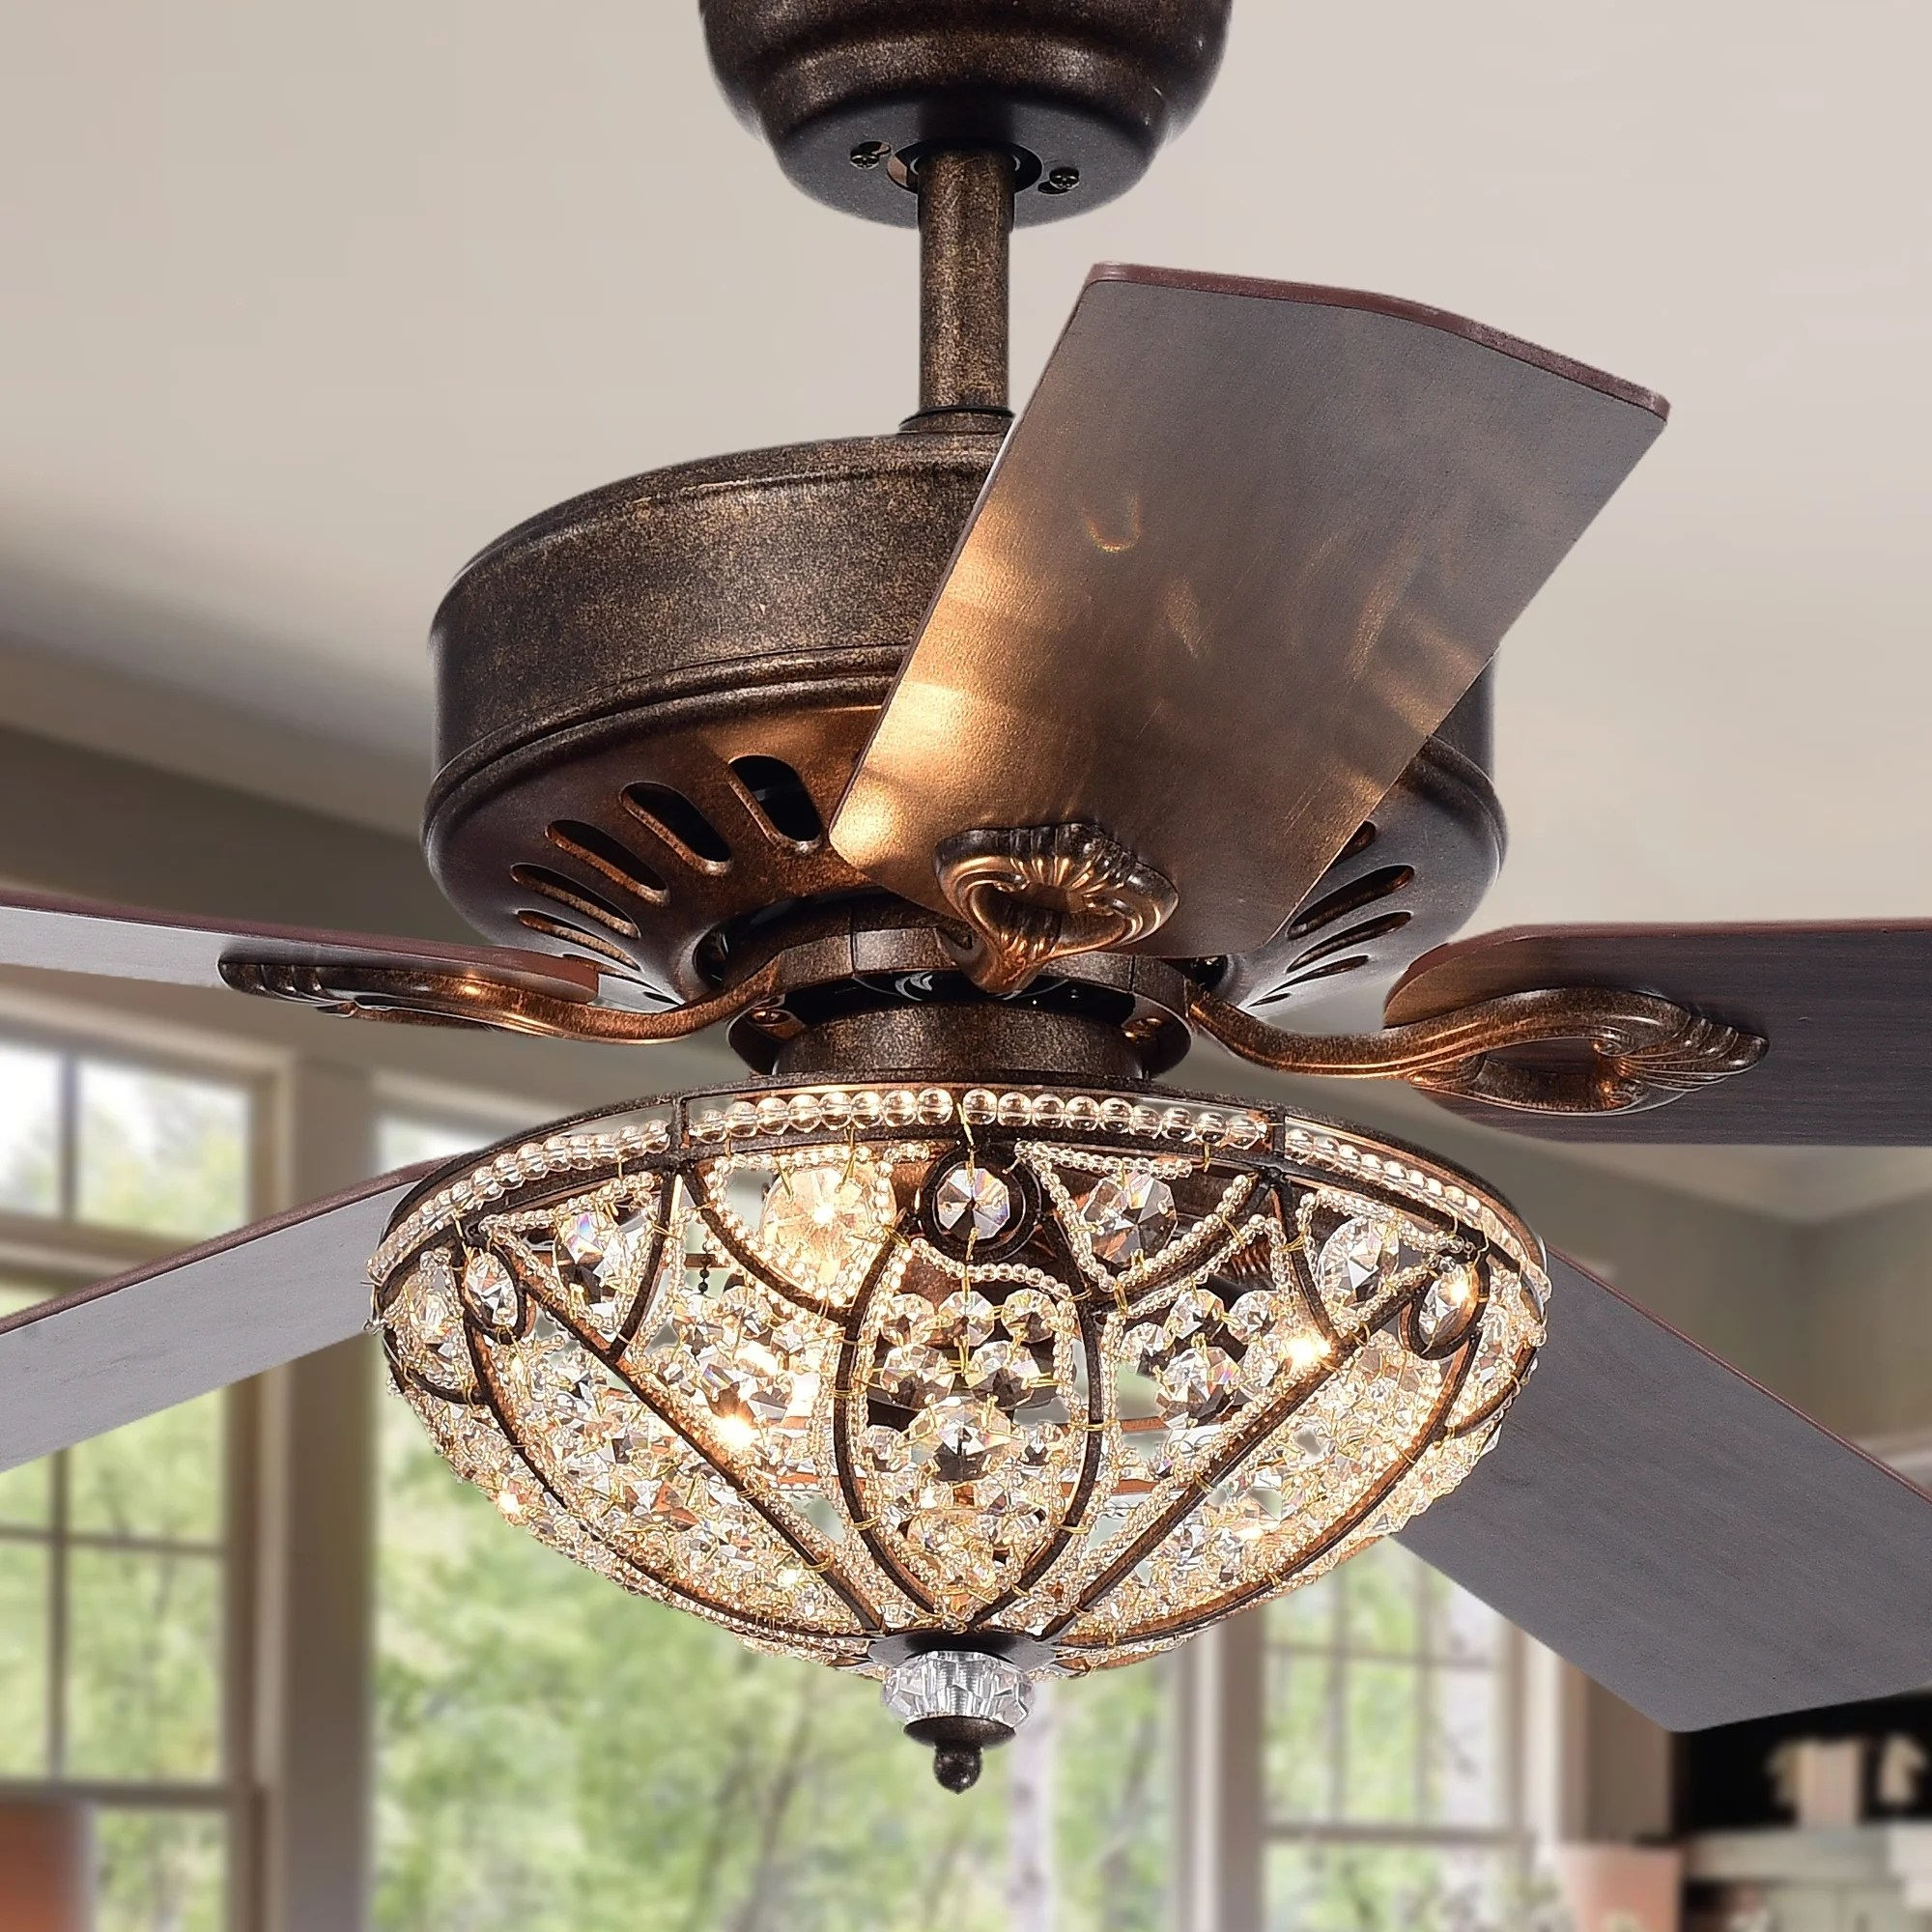 Rustic Ceiling Fan Light Fixtures Gliska 52 Inch 5 Blade Rustic Bronze Lighted Ceiling Fans With Crystal Bowl Shade Remote Controlled 2 Color Option Blades